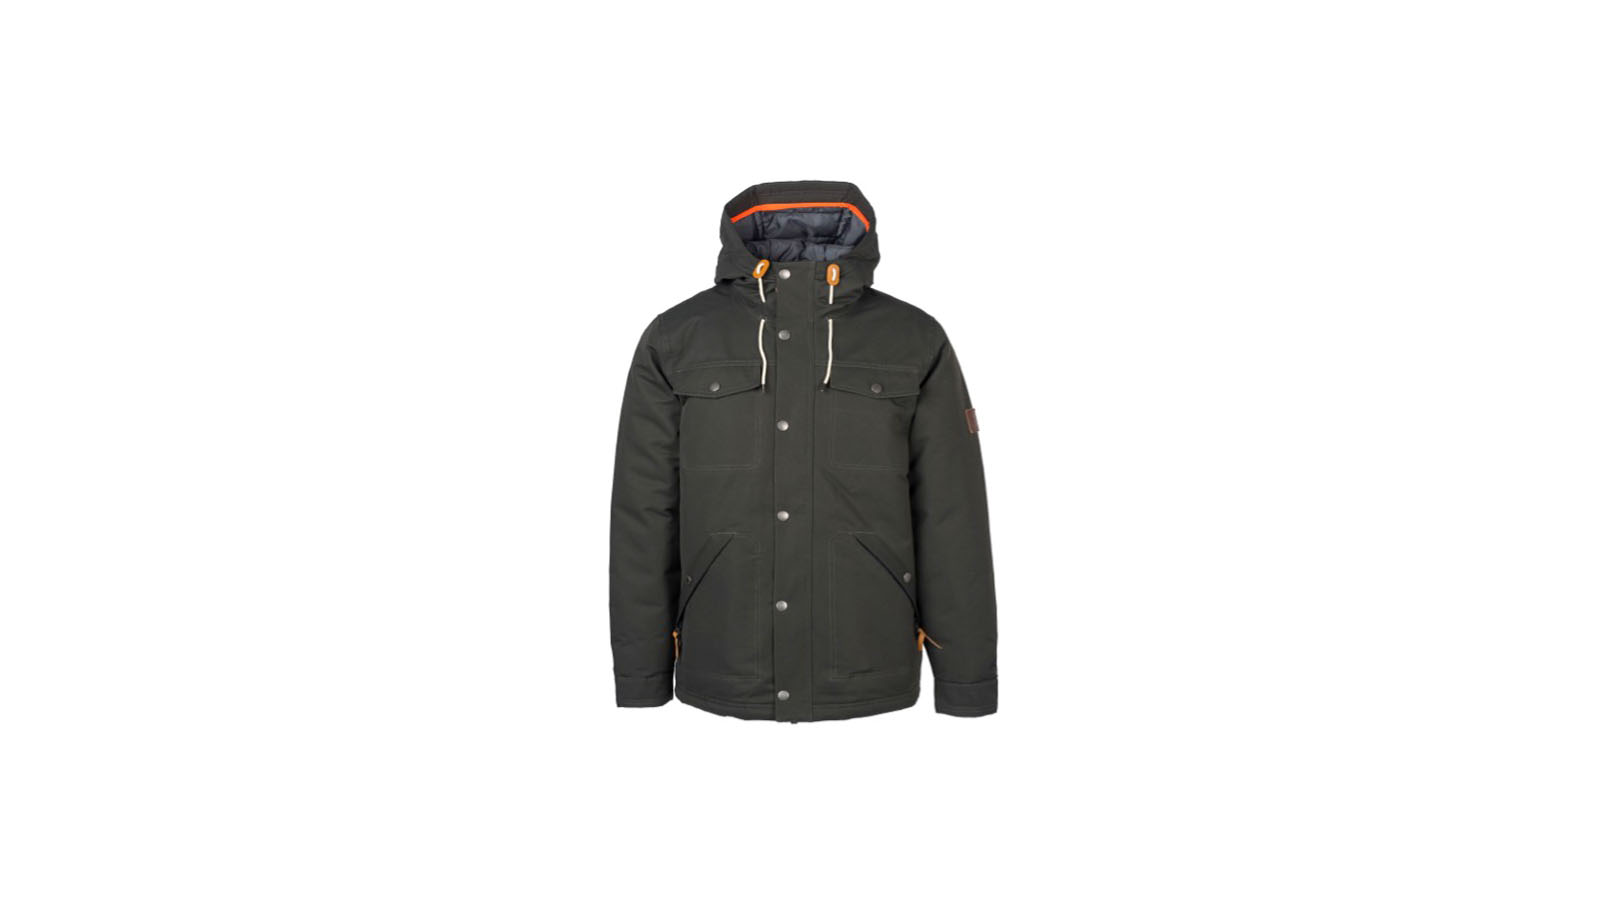 Ripcurl__0001_Easy rider Eco jacket